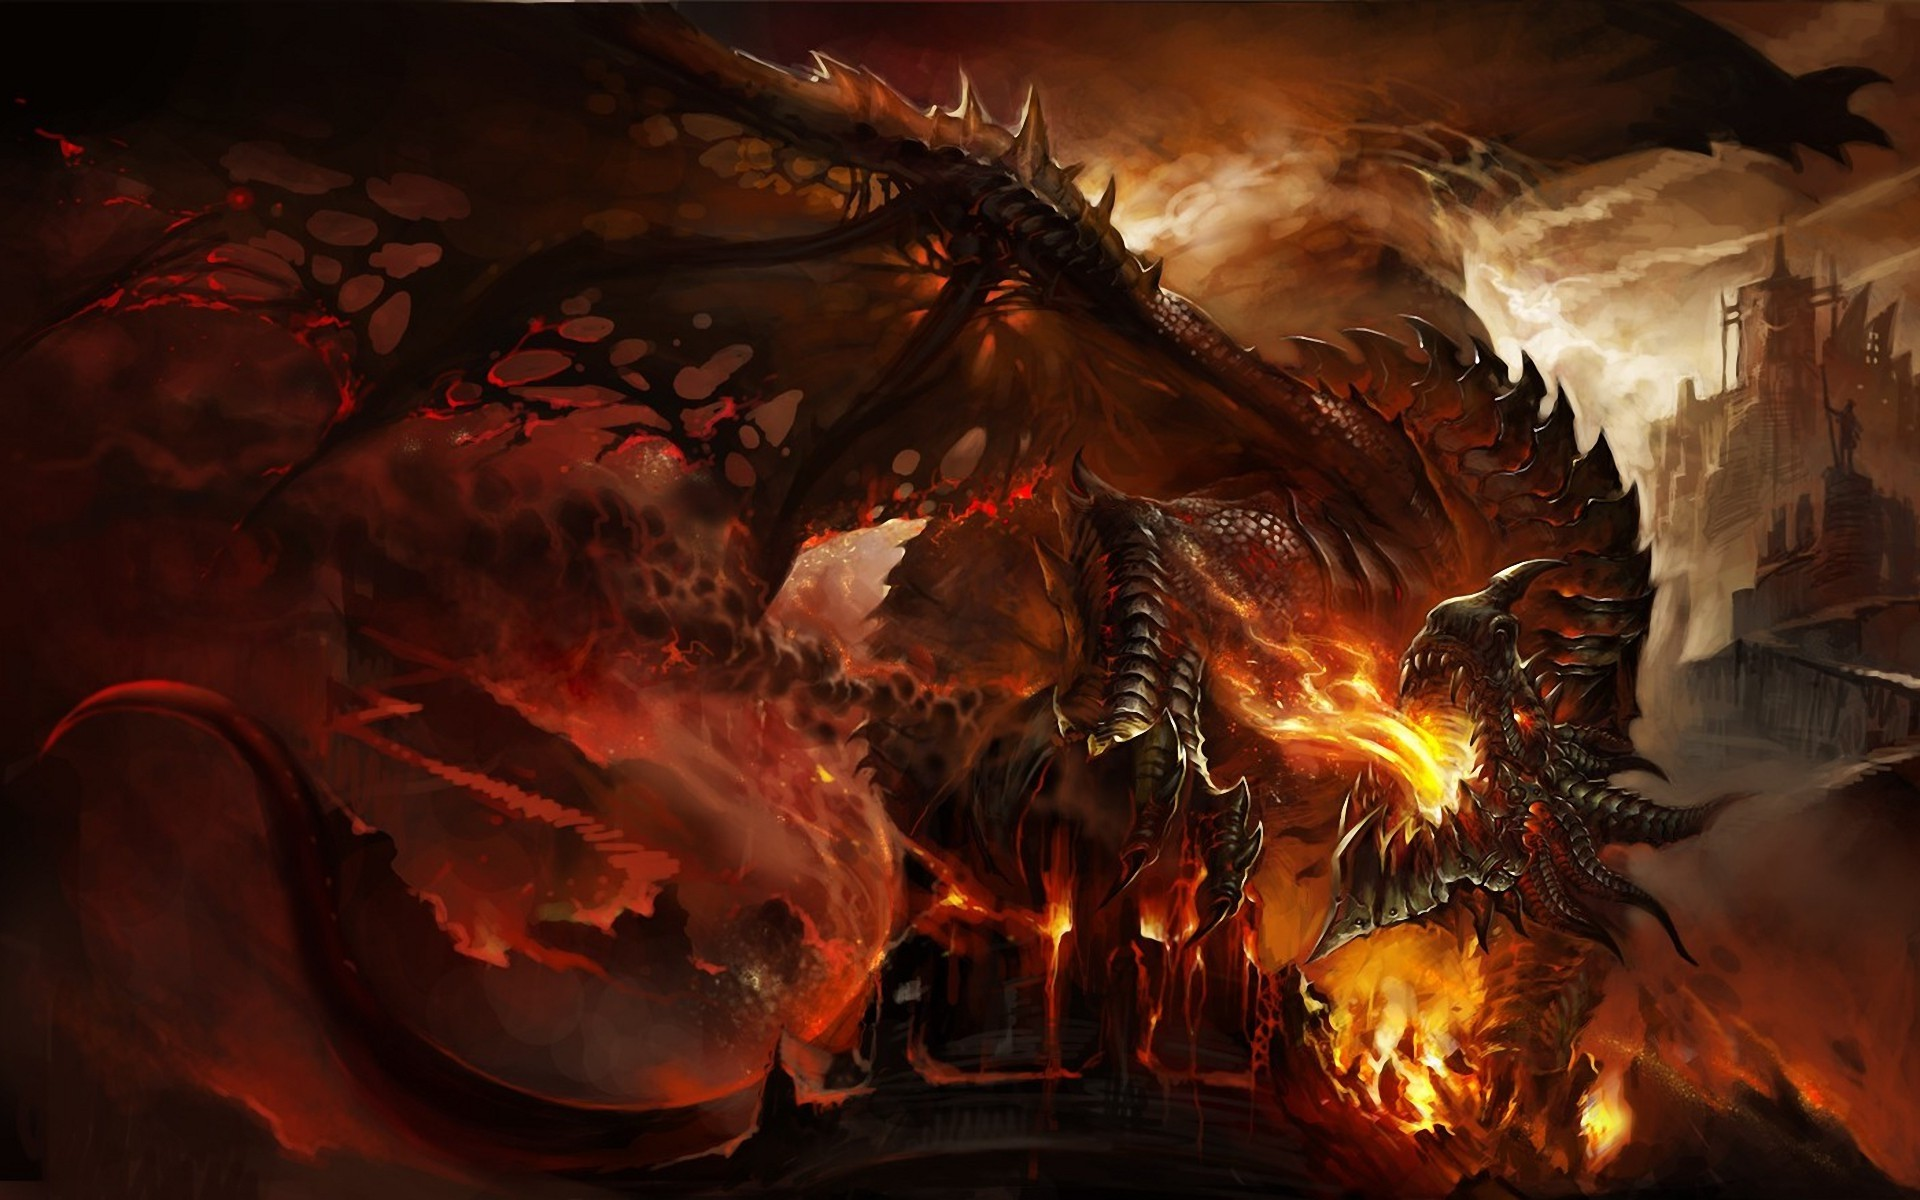 3840x2160 Preview Wallpaper World Of Warcraft Horde Symbol Background Red